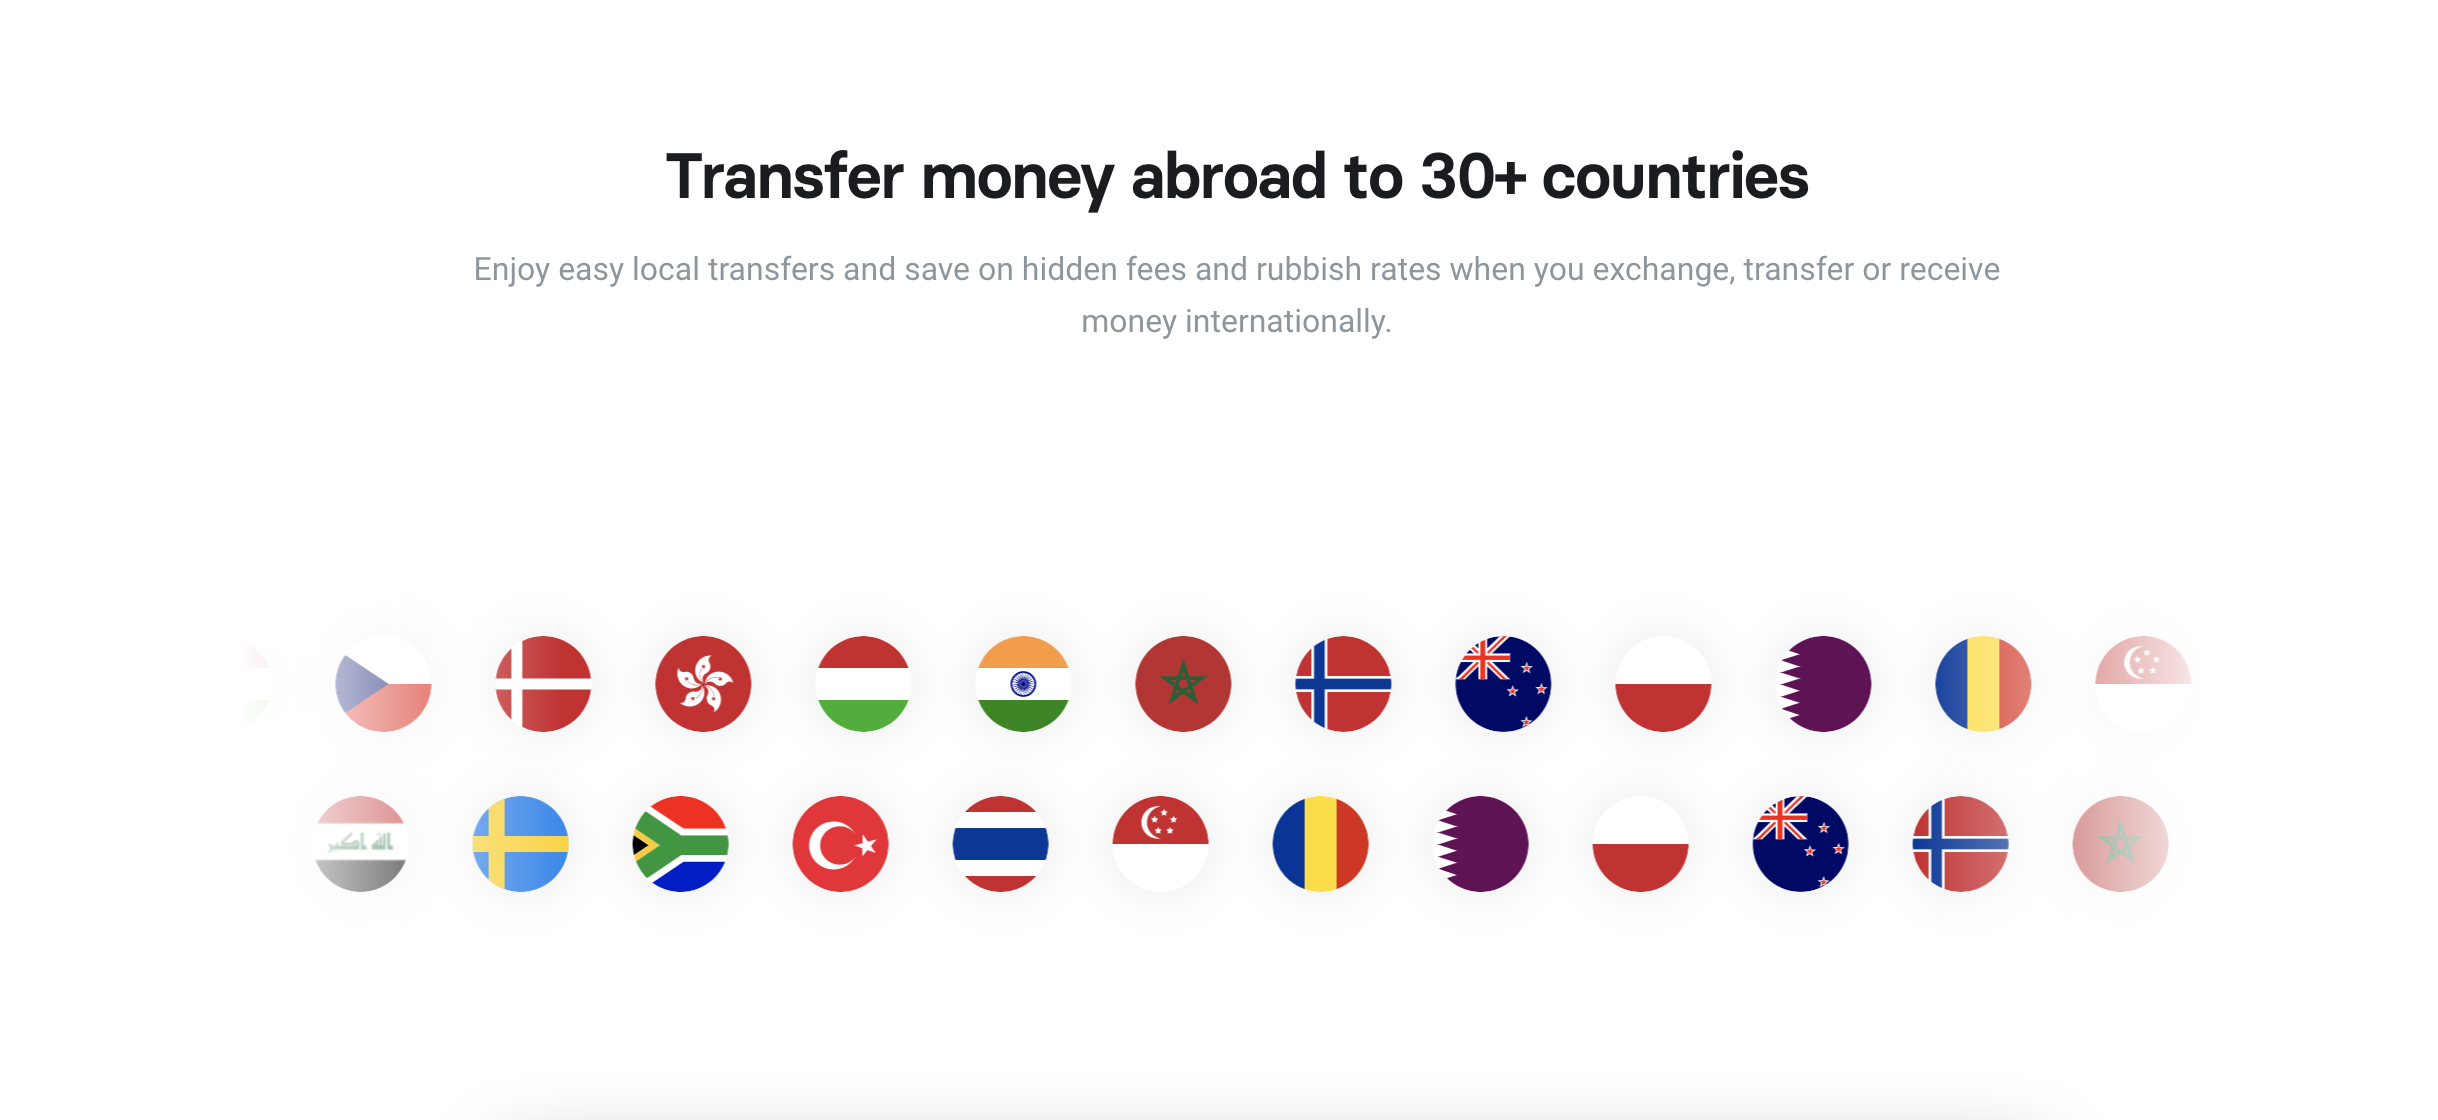 Revolut is known for making currency exchange cheaper than going through a traditional bank. You can send money abroad easily as well. Image from Revolut.com